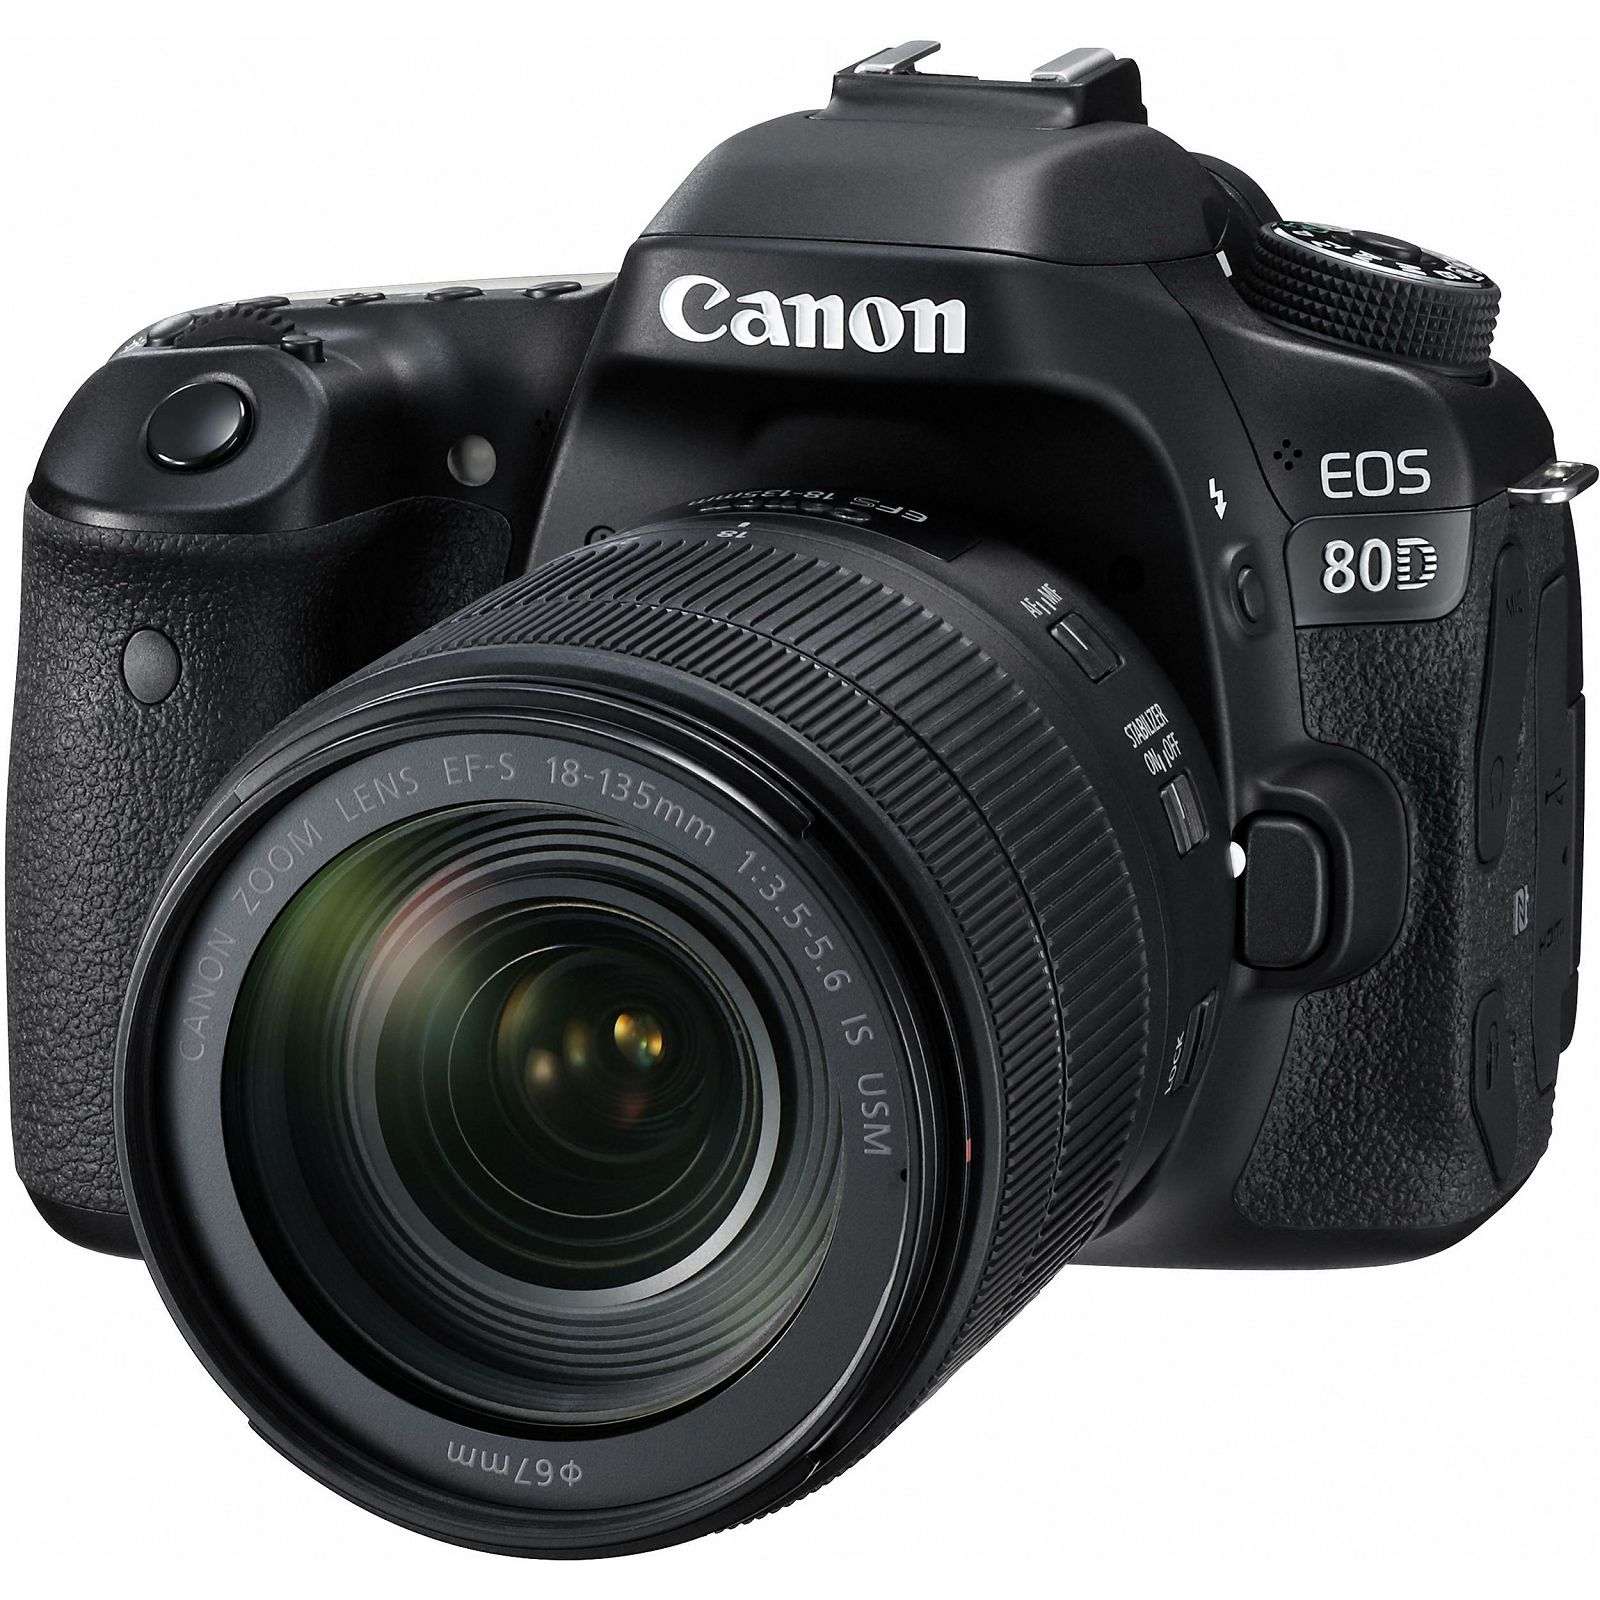 Canon EOS 80D + 18-135 IS USM NANO DSLR digitalni fotoaparat s objektivom 18-135mm f/3.5-5.6 (1263C012AA) - GetReady